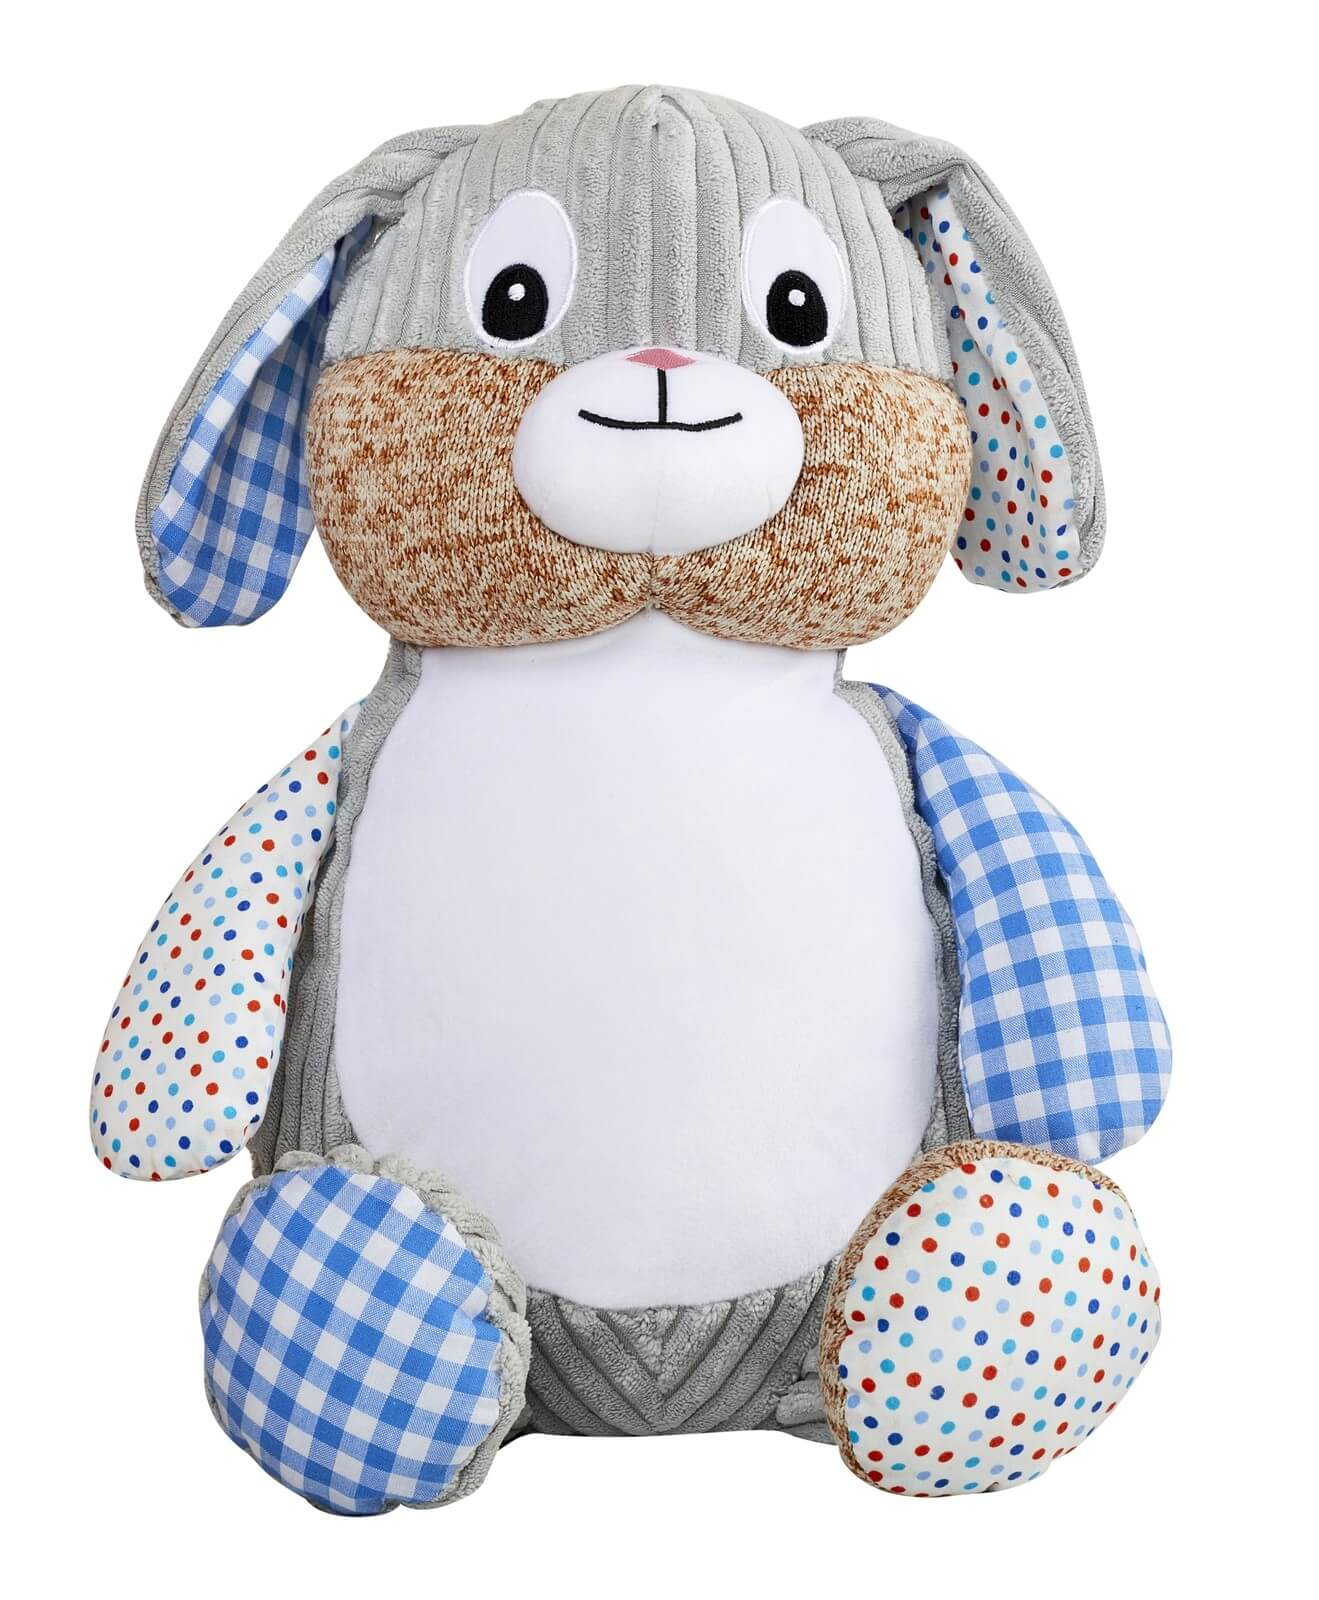 Personalised Teddy - Harlequin Blue Bunny - D'lighted